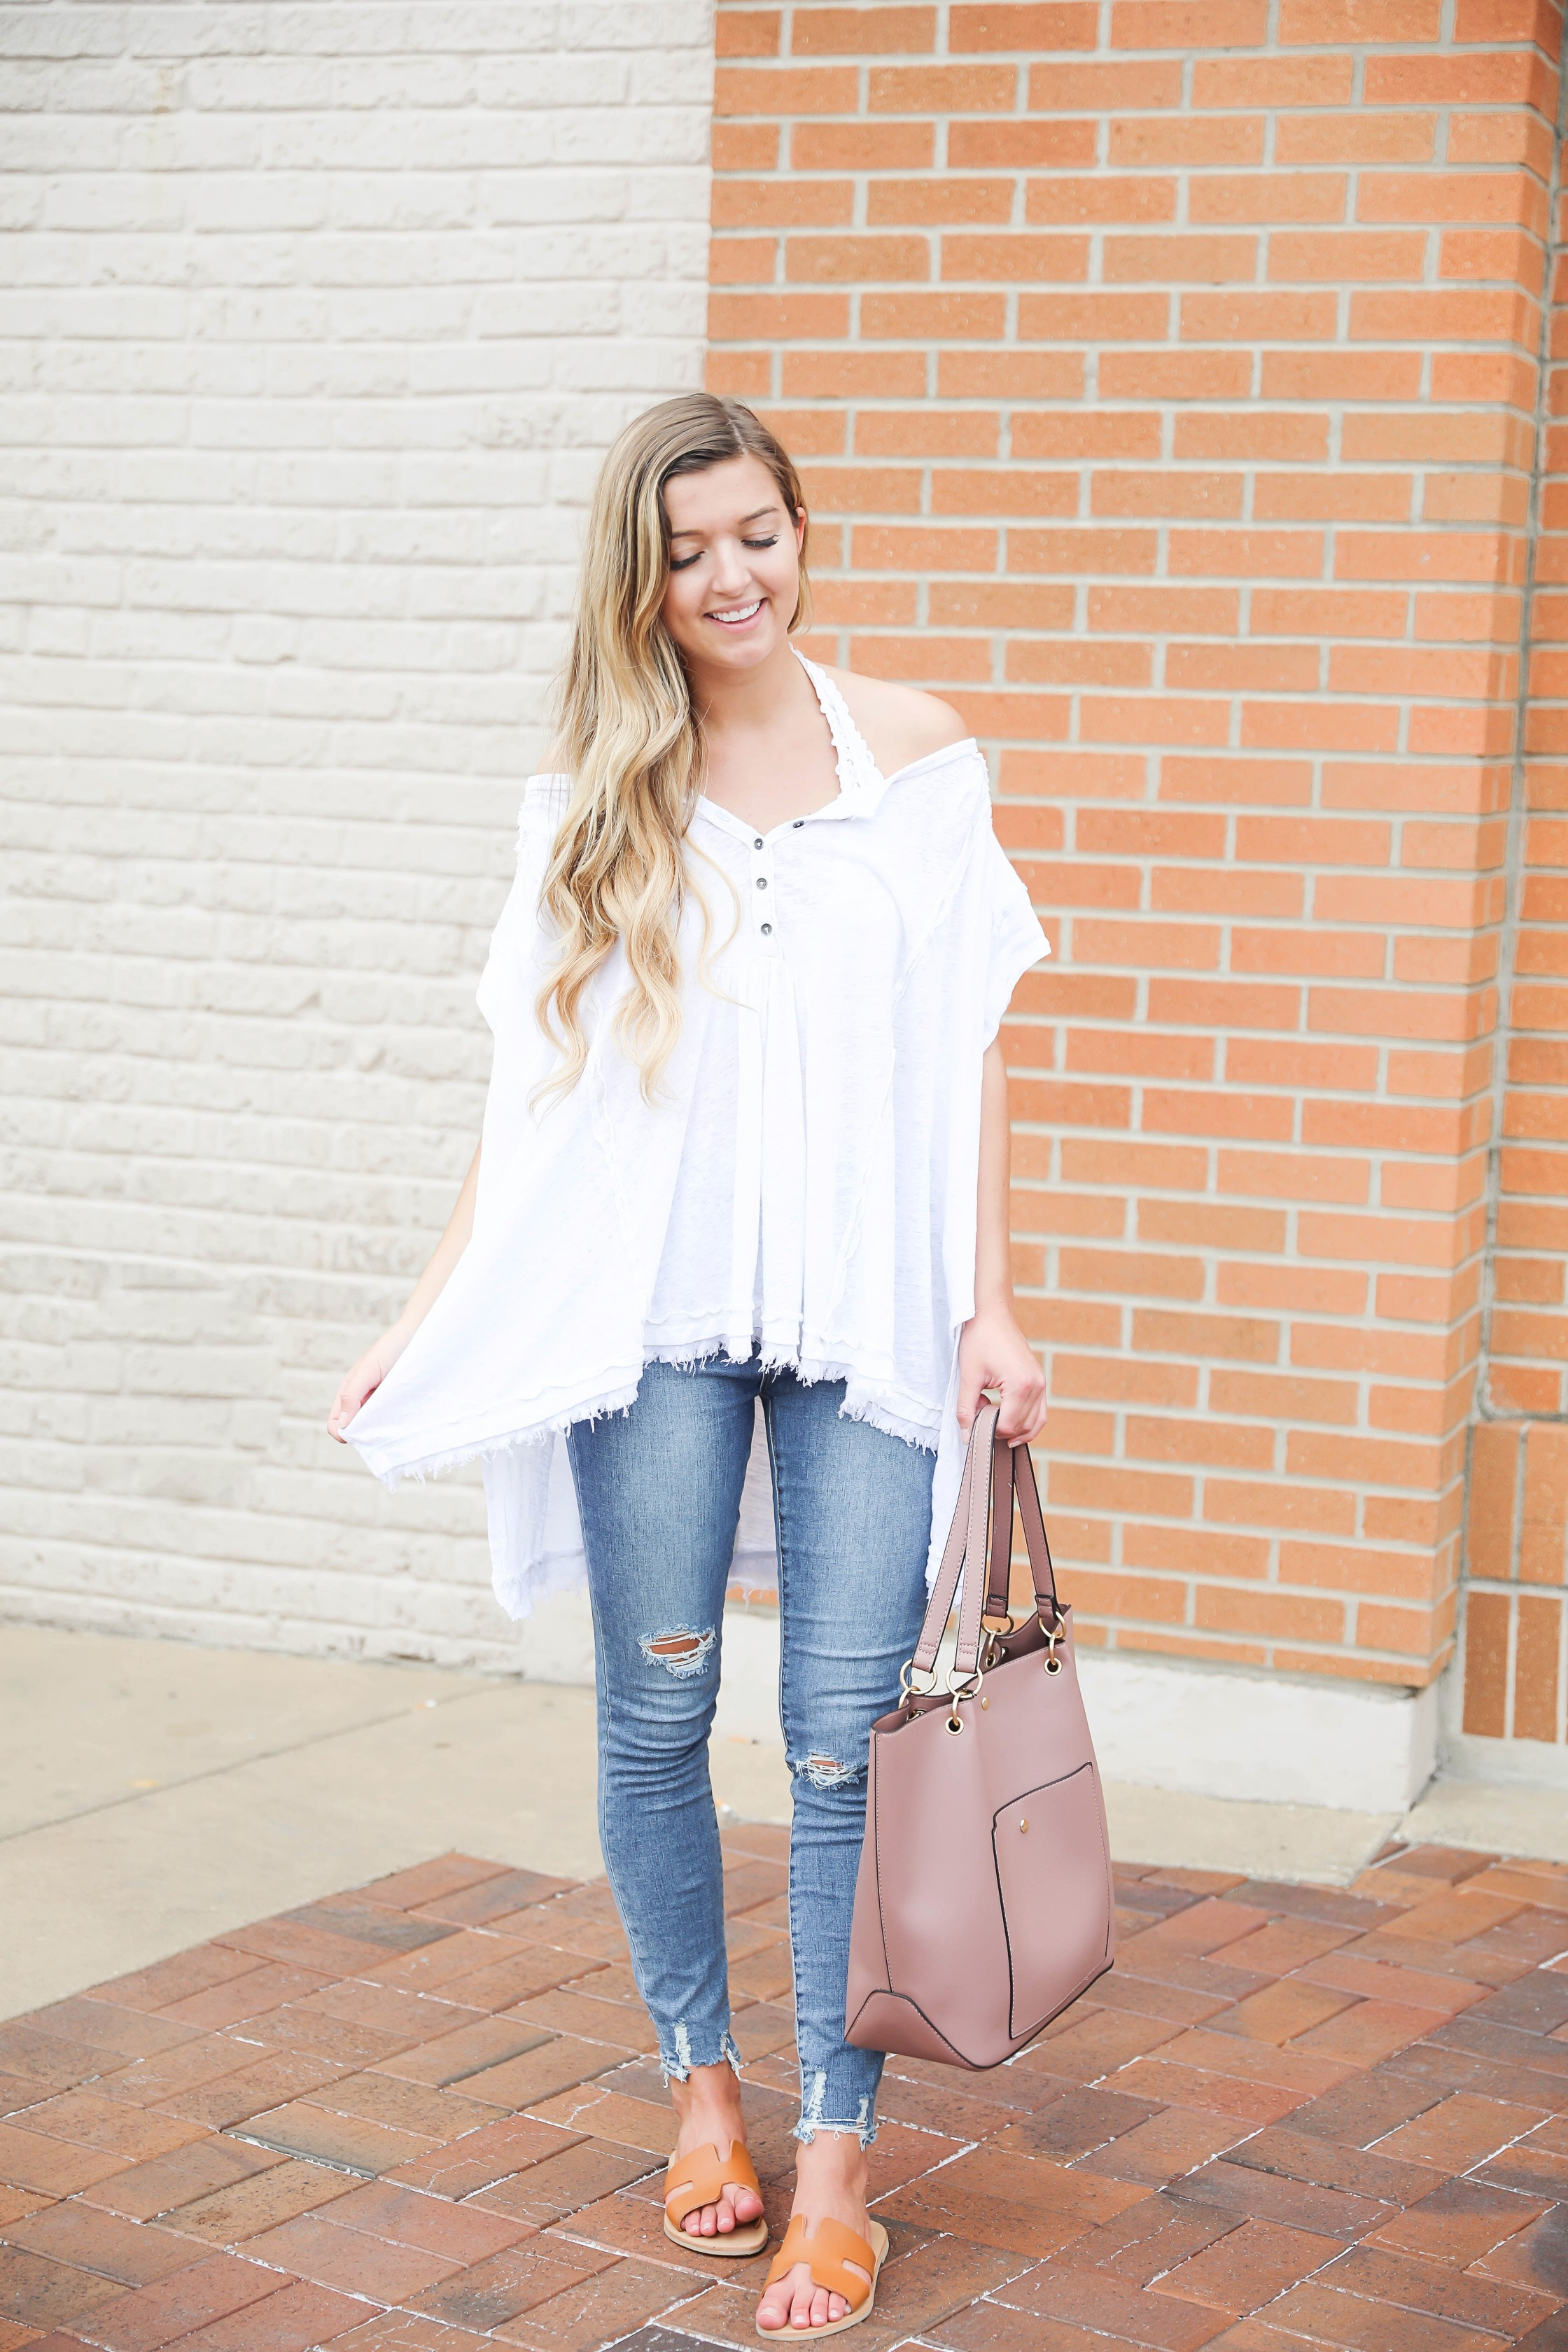 Flowy free people top paired with a bralette! I wore my cute, new articles of society jeans and mauve tote bag from the nordstrom anniversary sale! Such a cute outift to transition into fall! Details on fashion blog daily dose of charm by lauren lindmark